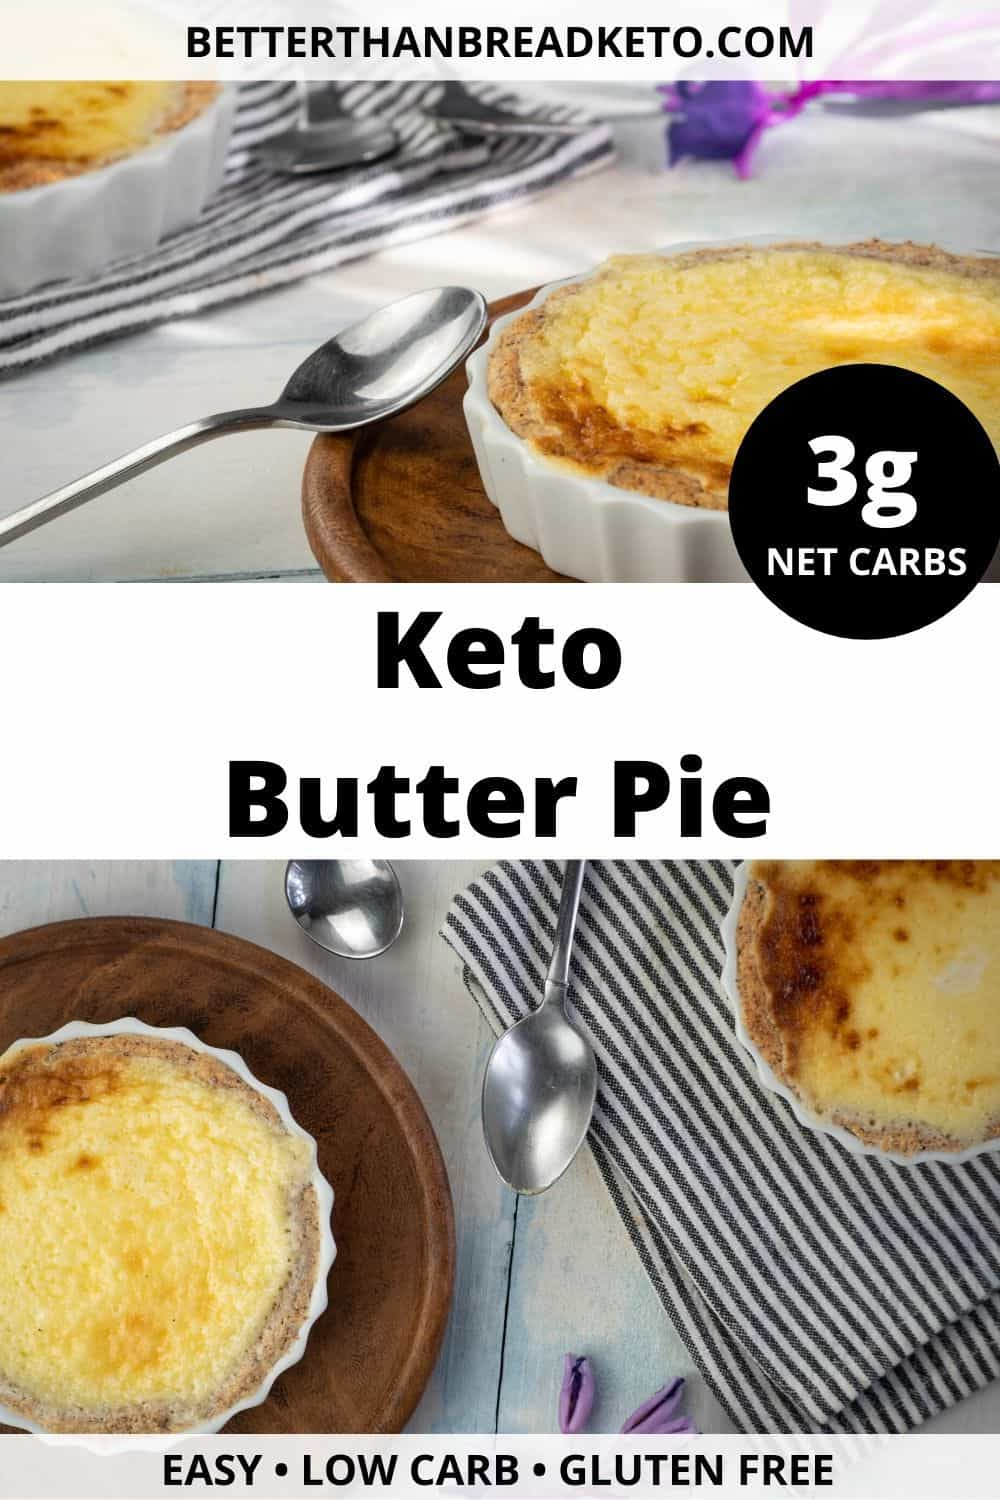 Keto Butter Pie